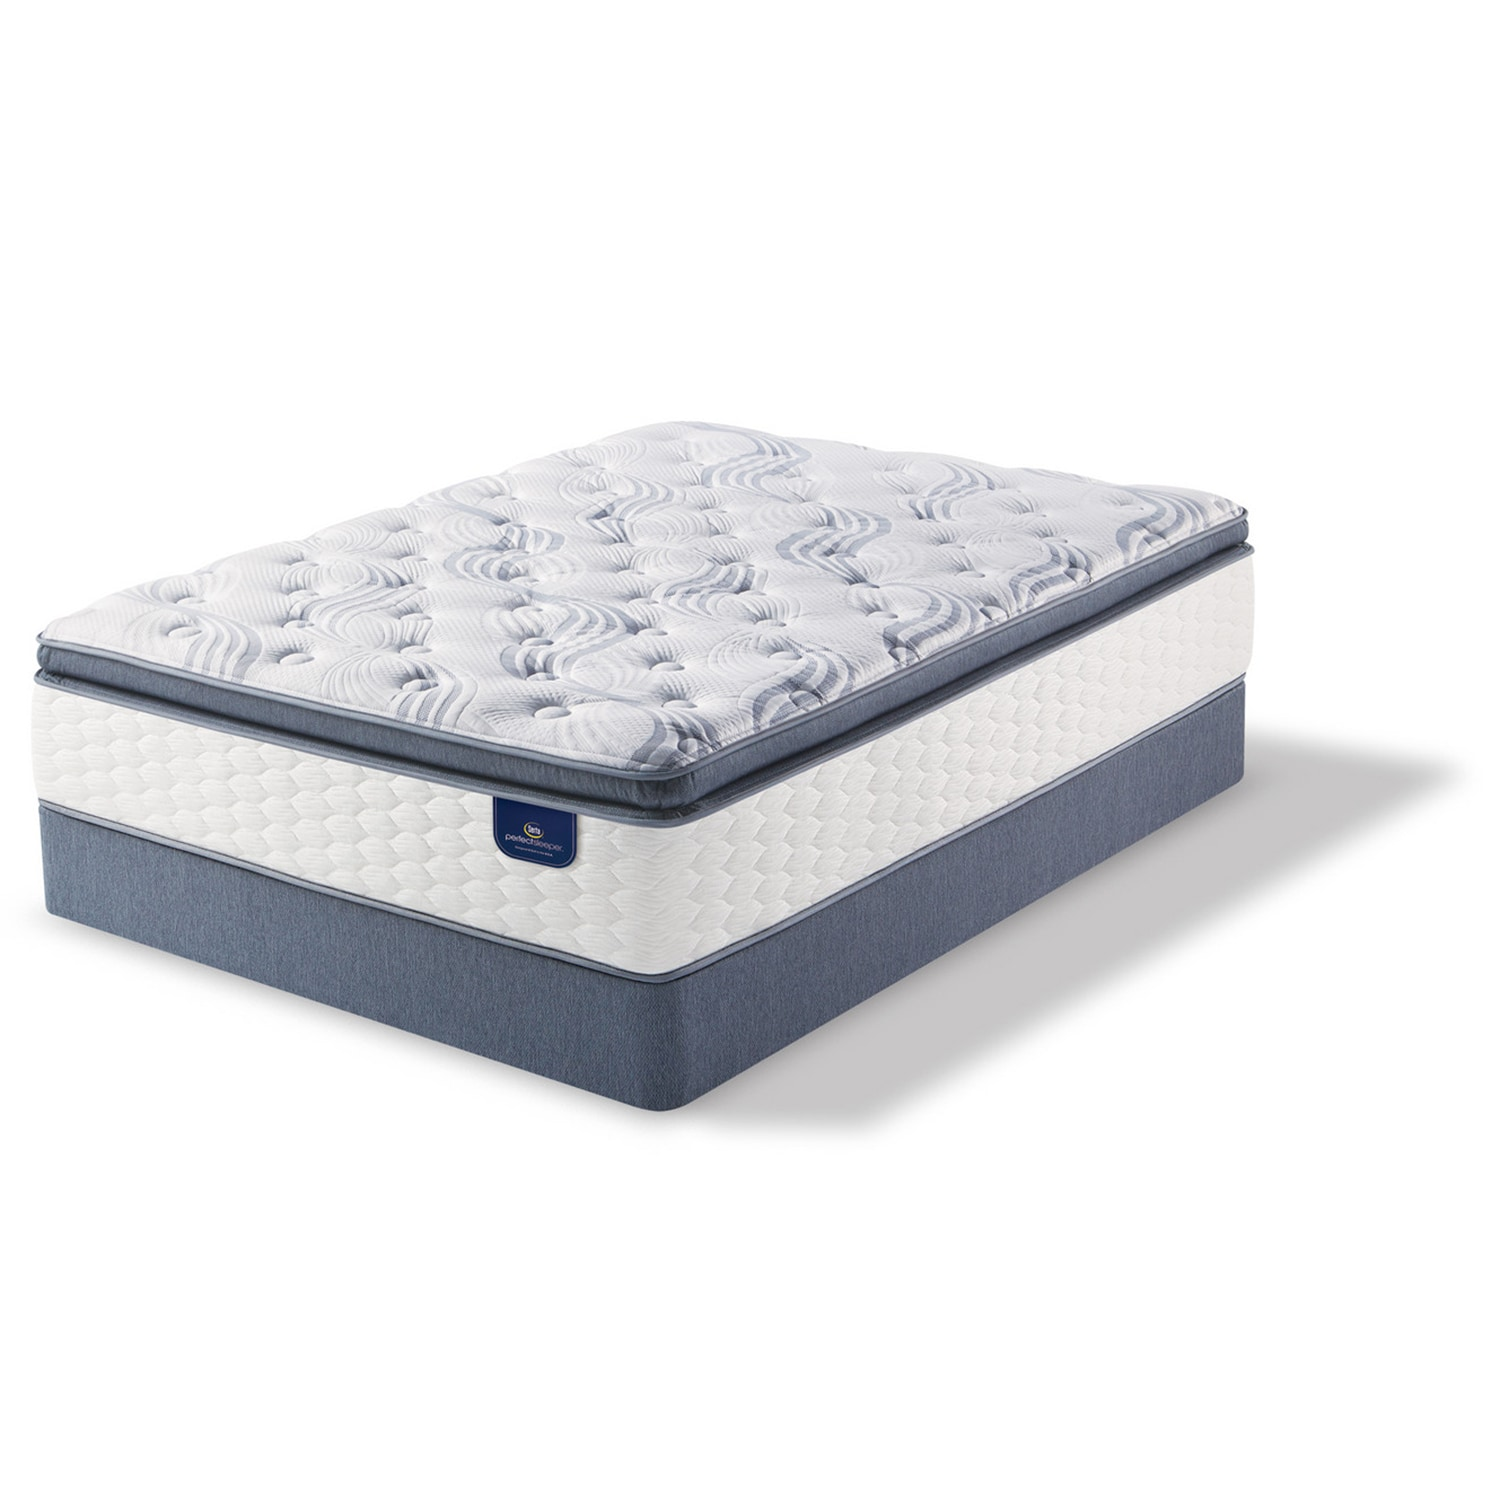 ip and pillow queen walmart foam serta mattress topper top com memory